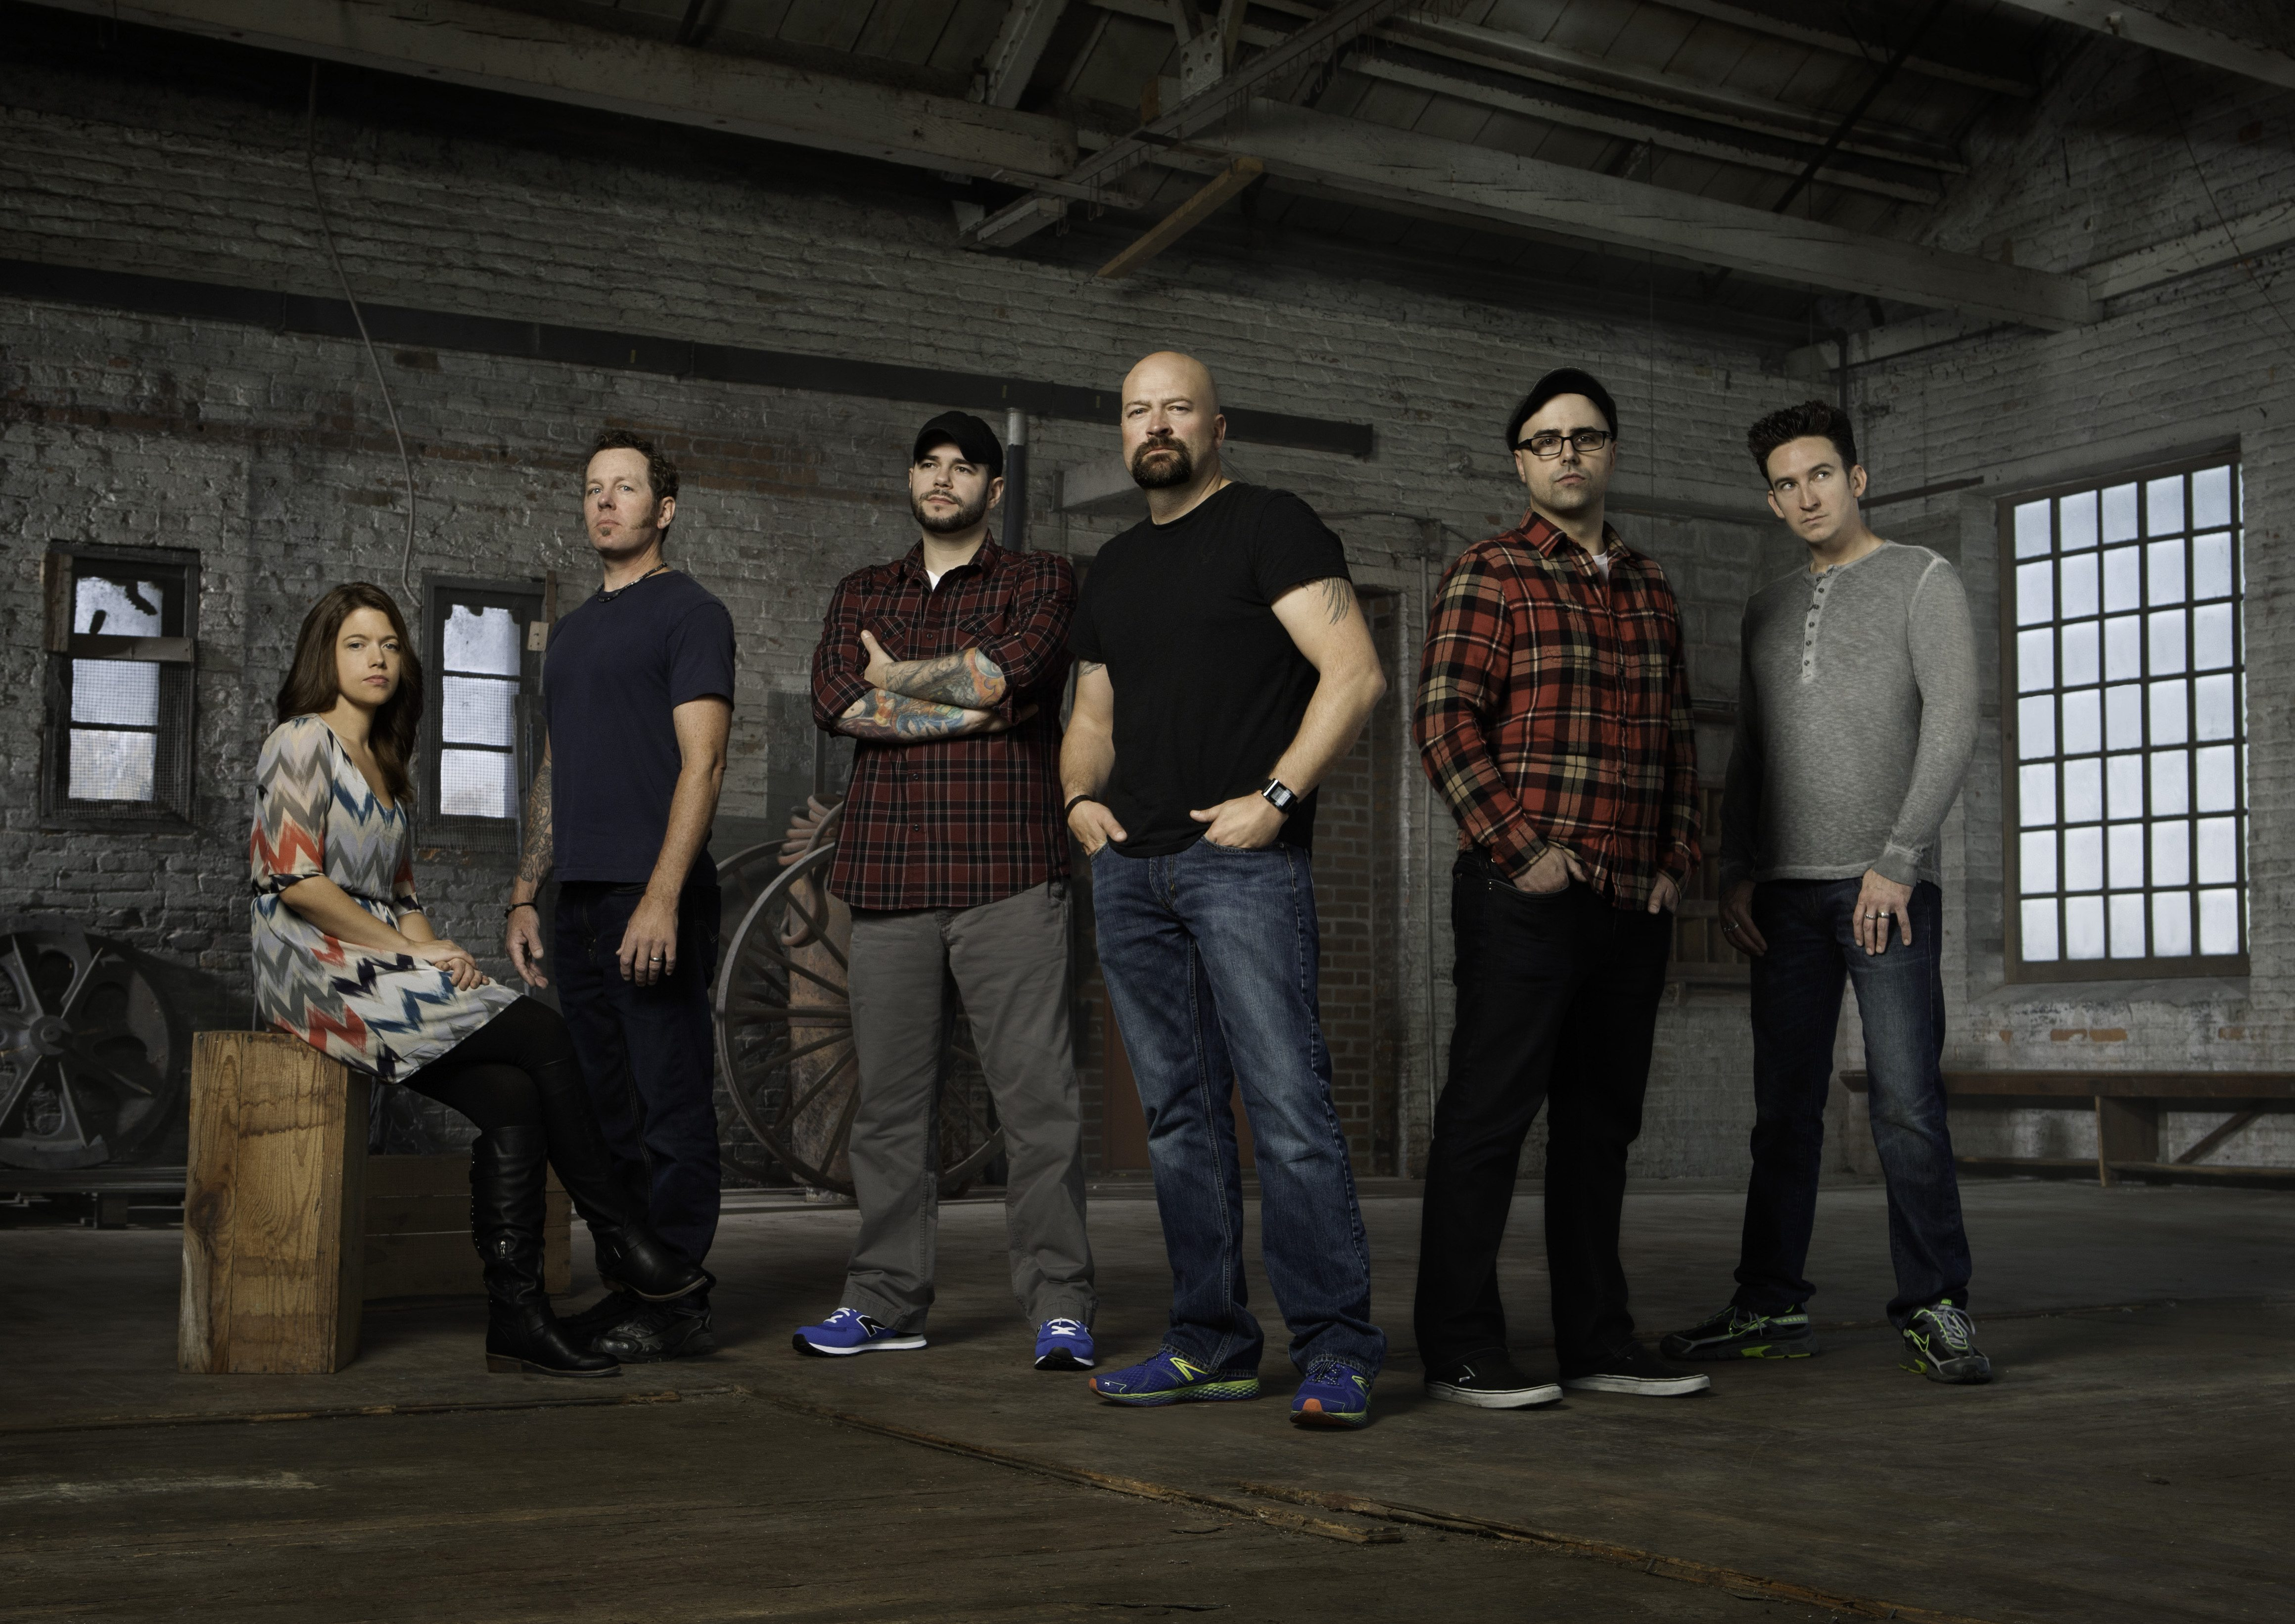 Ghost Hunters Season 10 Crew!  Image courtesy of SyFy Channel and used with permission